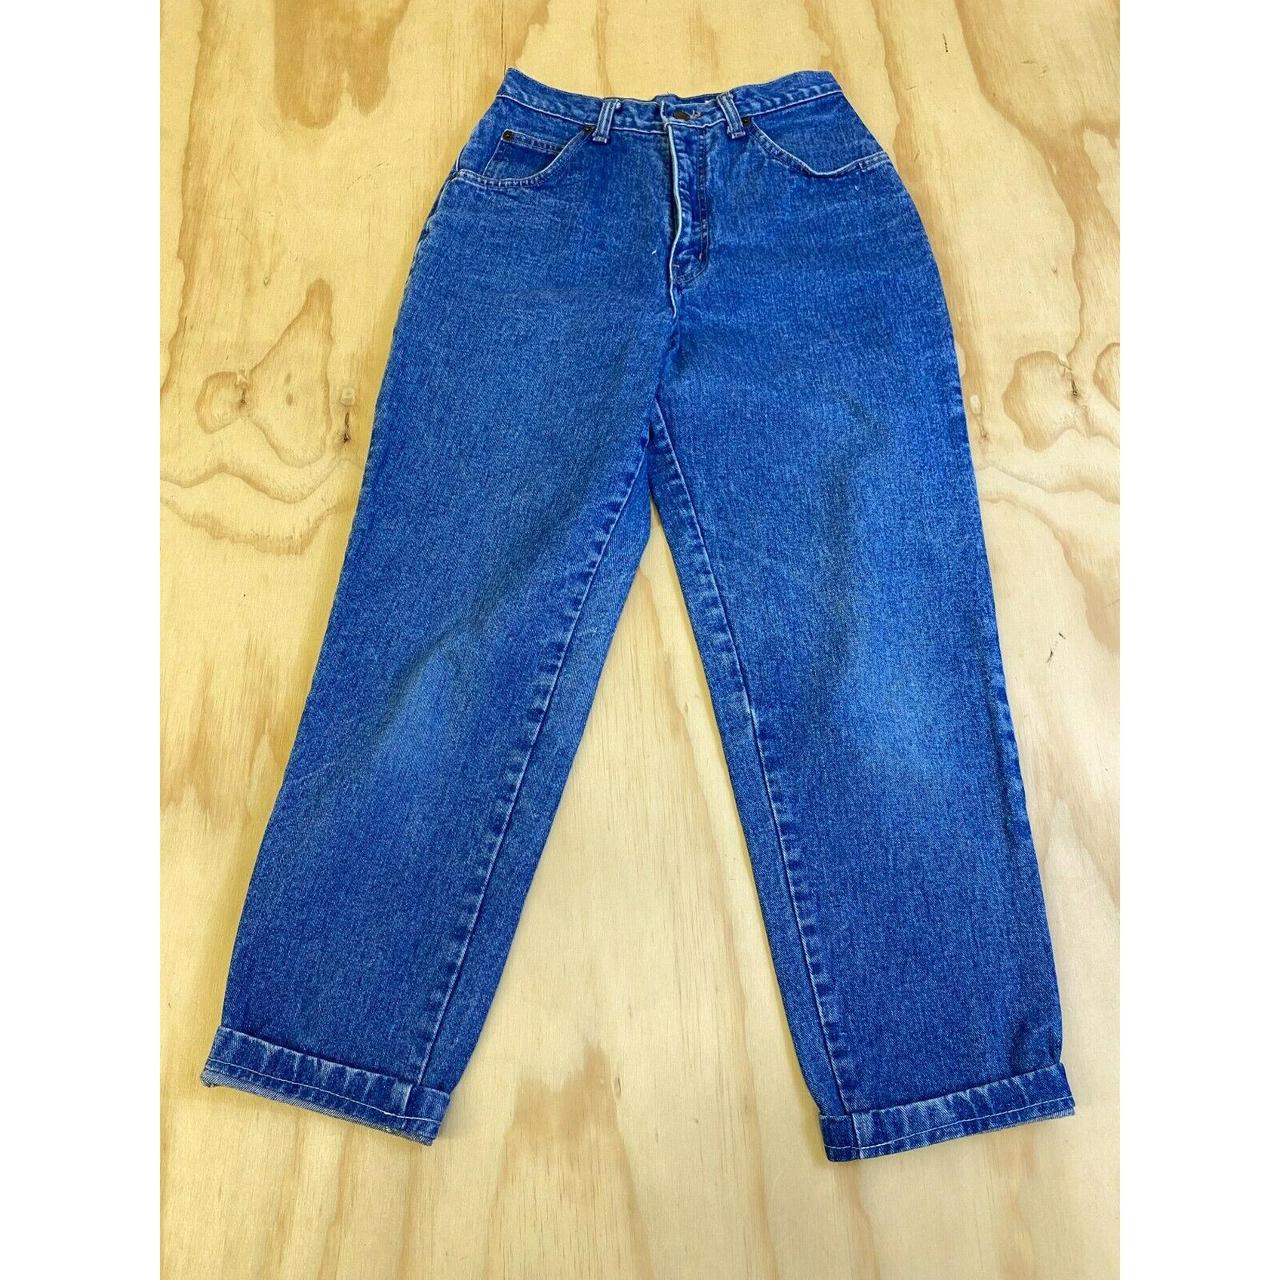 Product Image 1 - VTG NORTHERN REFLECTIONS WOMEN SIZE